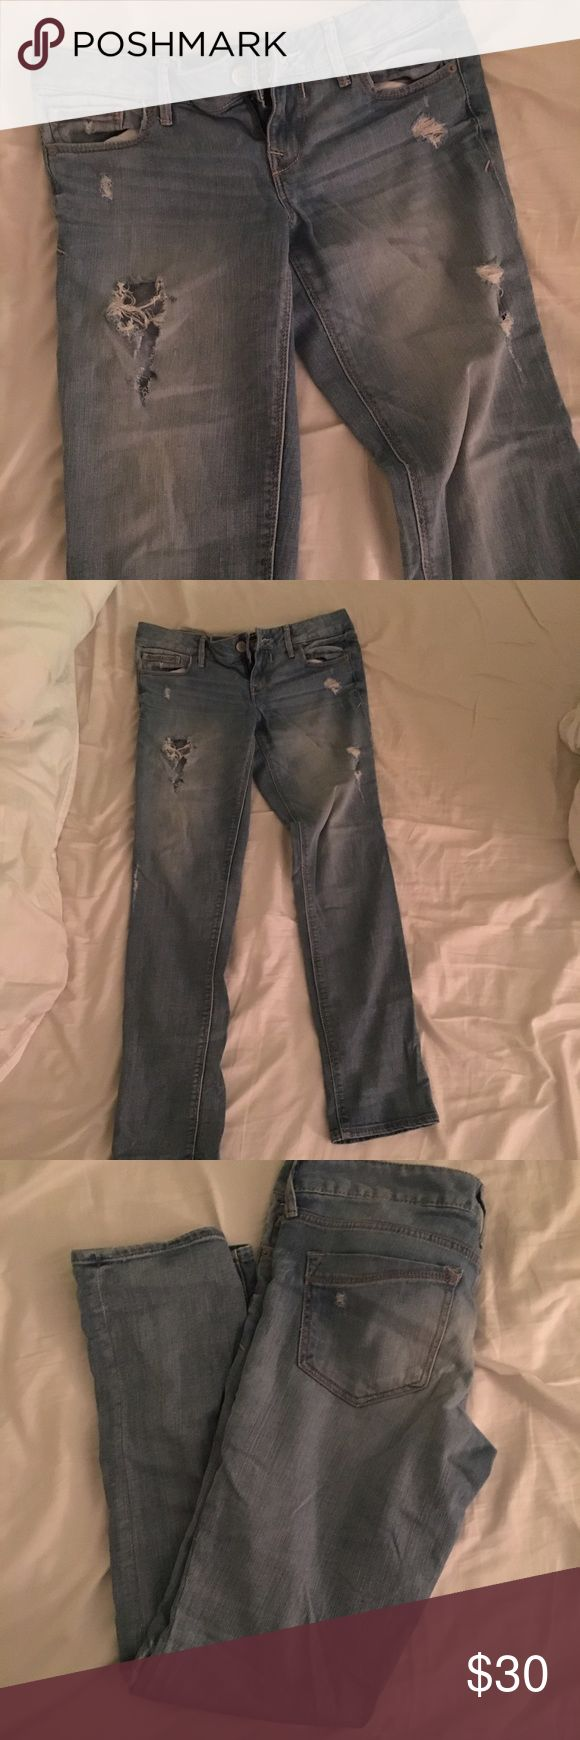 Express light wash ripped boyfriend fit jeans Ripped jeans from express, light wash denim. They're a size 0 but fit like a 2 in the waist because of the boyfriend fit. Holes in front and small rip detail on back pockets Express Jeans Boyfriend